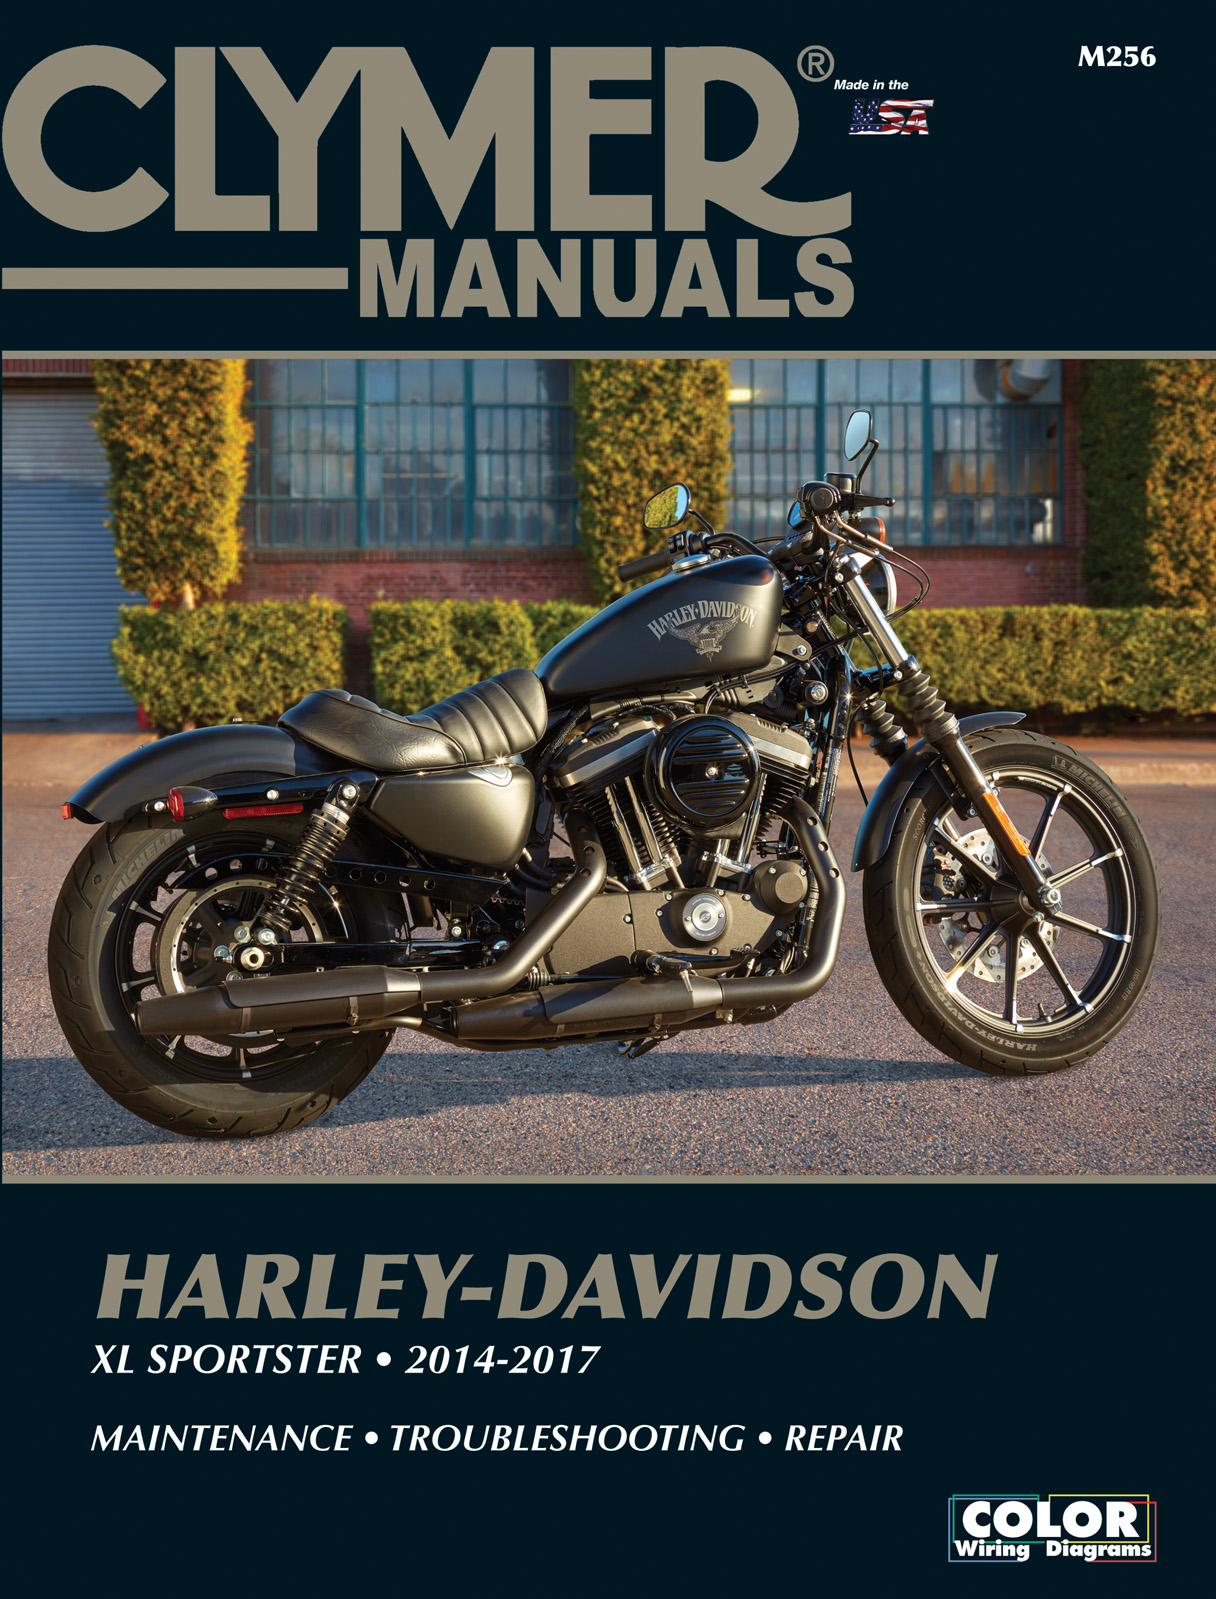 Harley-Davidson XL883N Iron 883 (2014 - 2017) Repair Manuals on